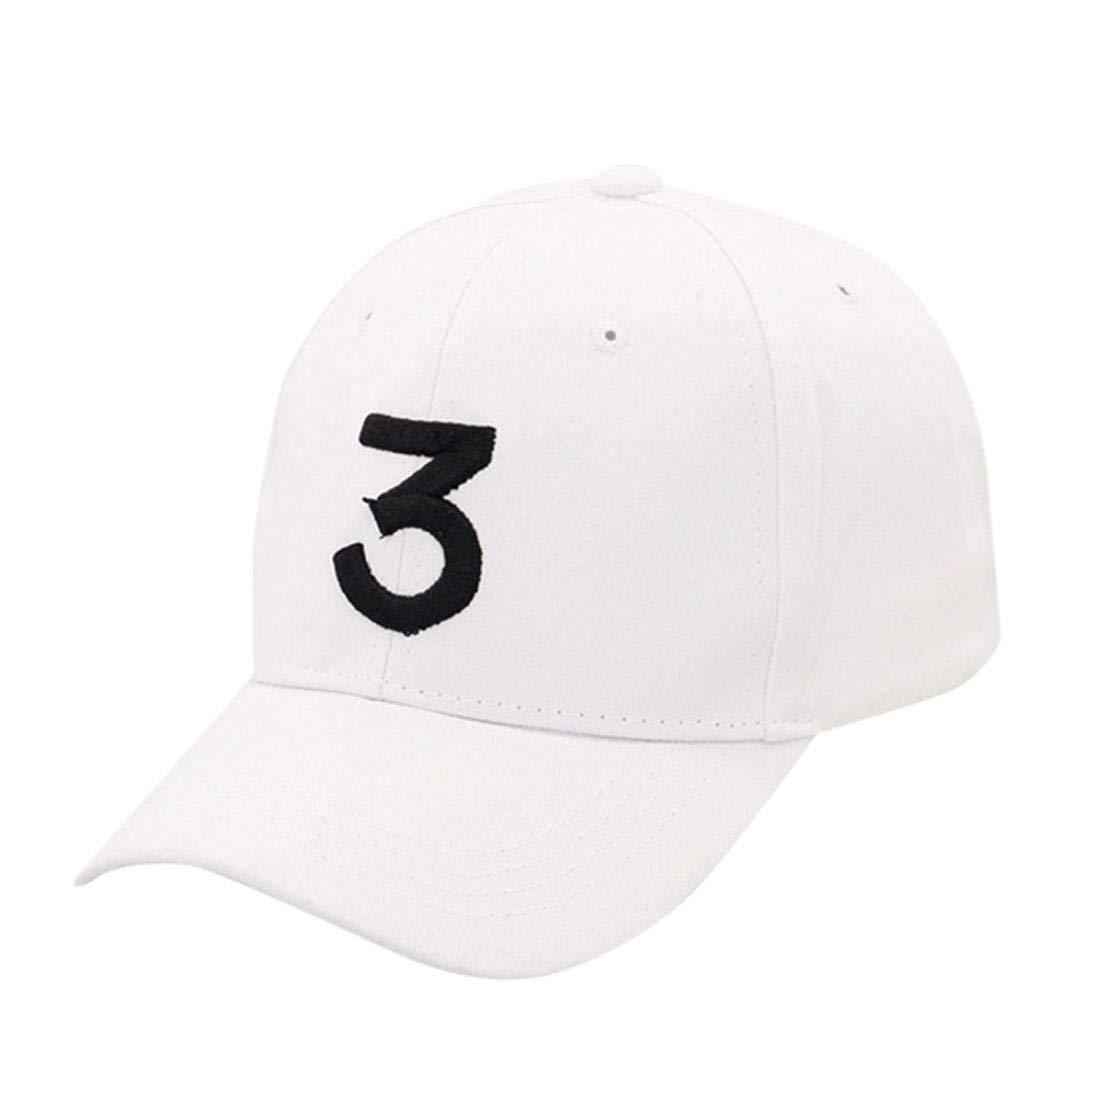 SUKEQ Unisex Number 3 Printed Twill Cotton Baseball Cap Vintage Adjustable Dad Hat Polo Style Cool Hip Hop Hat for Travel, Sporting, Running, Cycling, Camping, Fishing